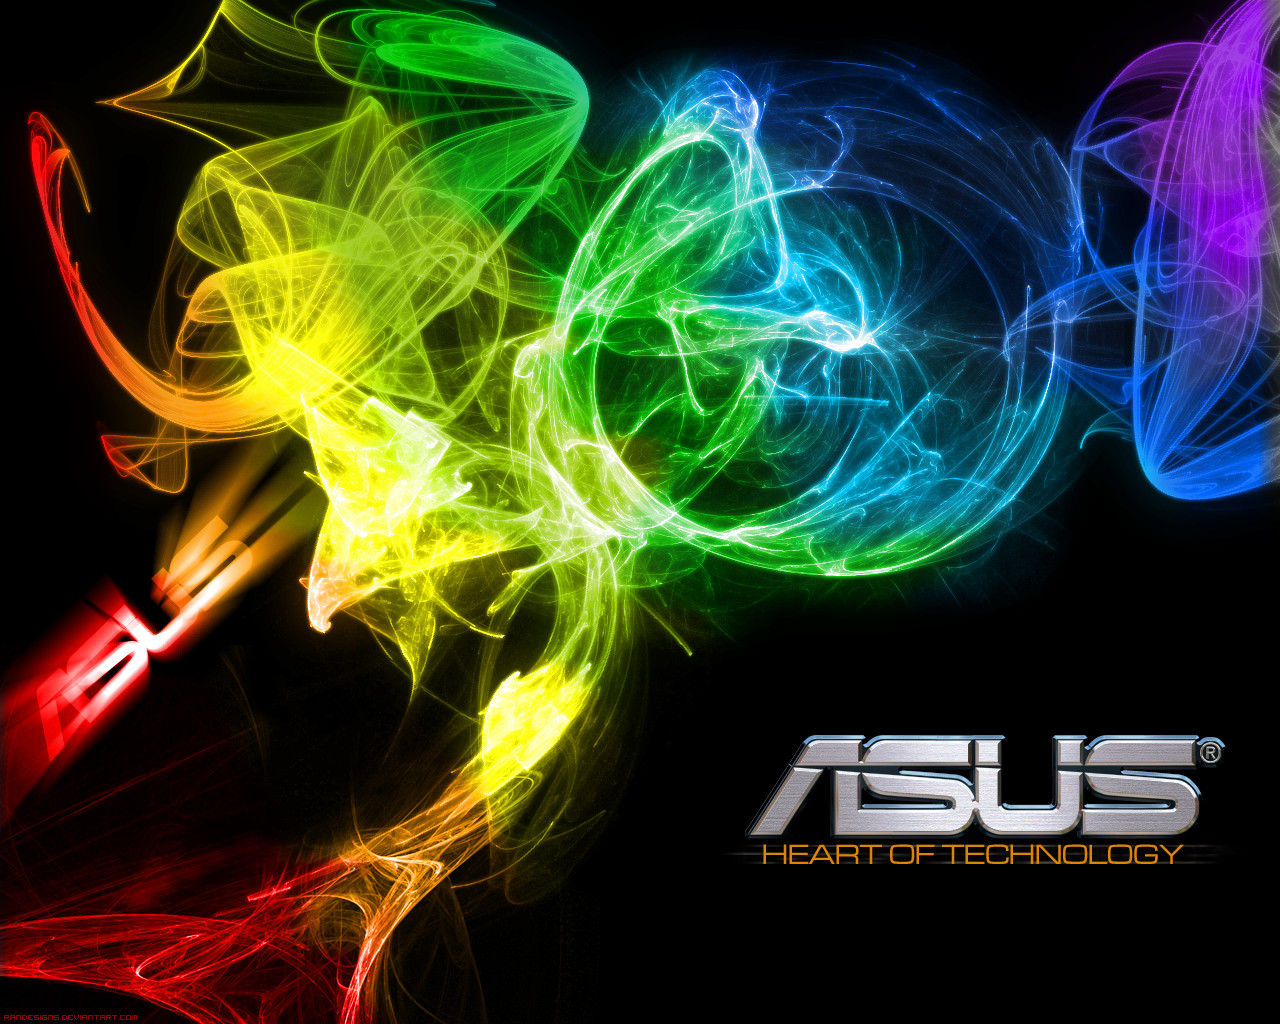 asus wallpaper 1280x1024 5 4 back to wallpaper back home 1280x1024